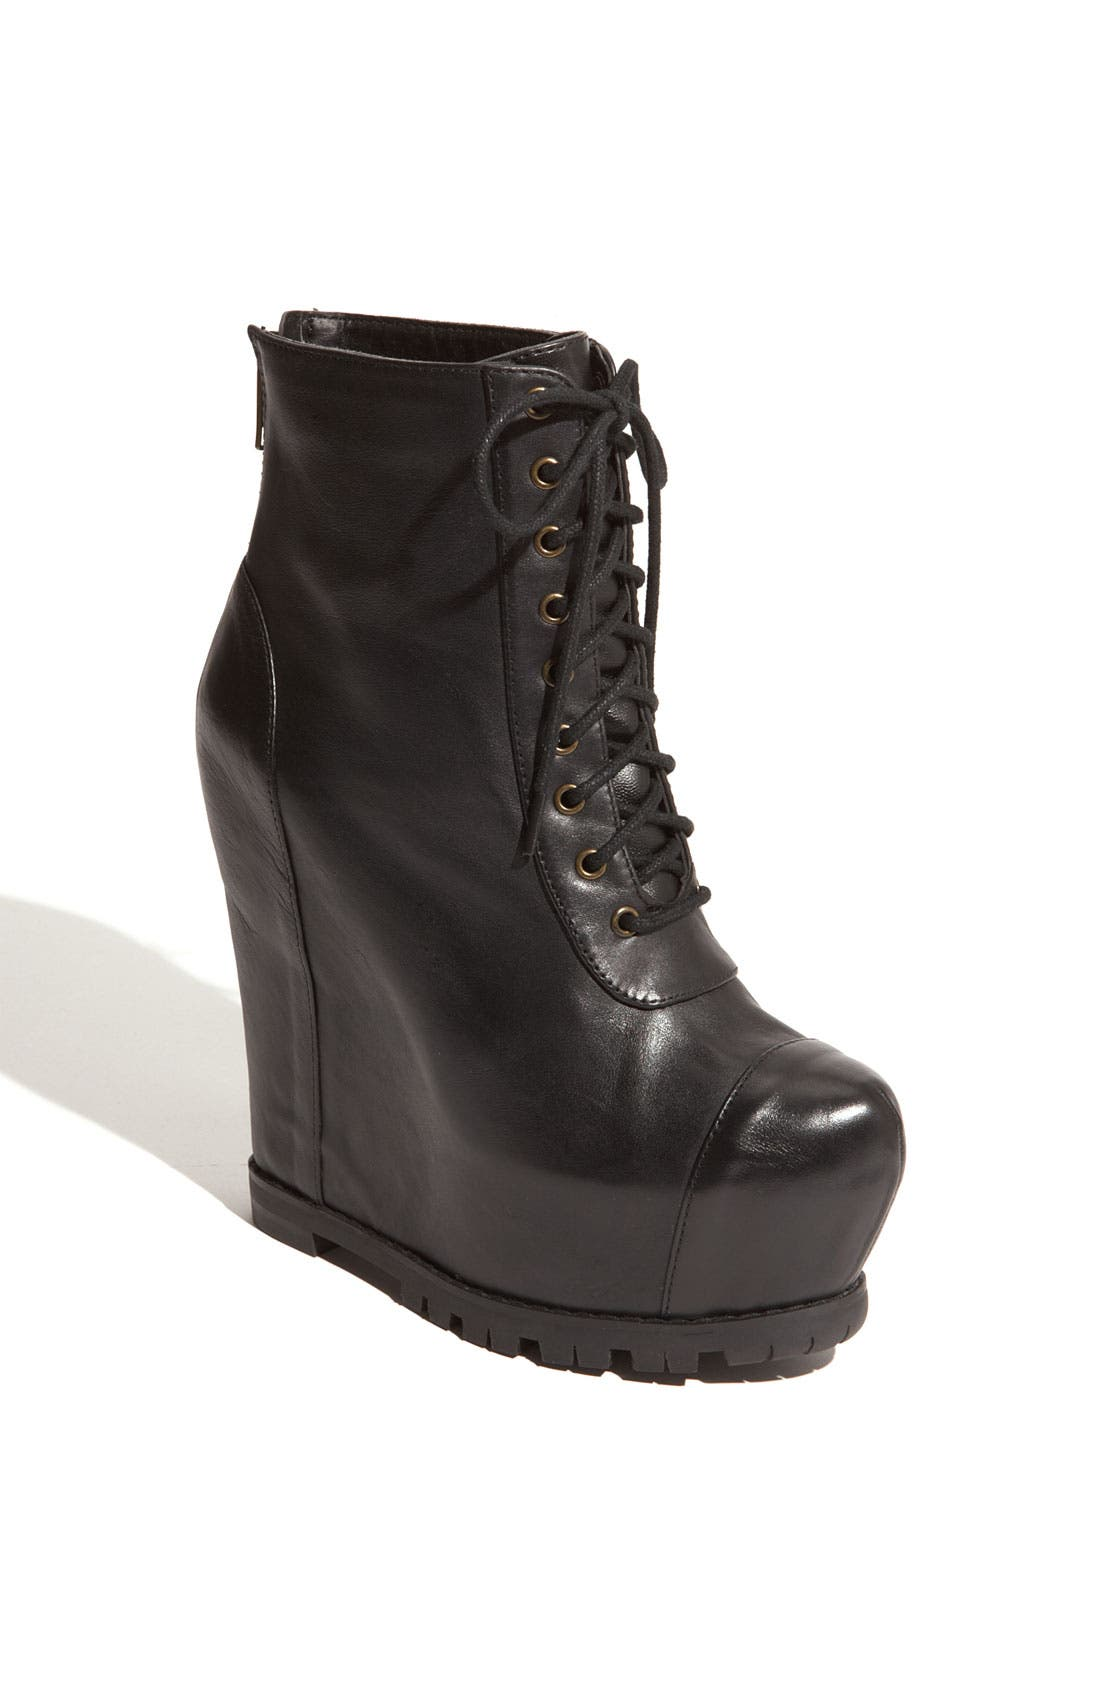 Main Image - Steve Madden 'Armenda' Wedge Boot